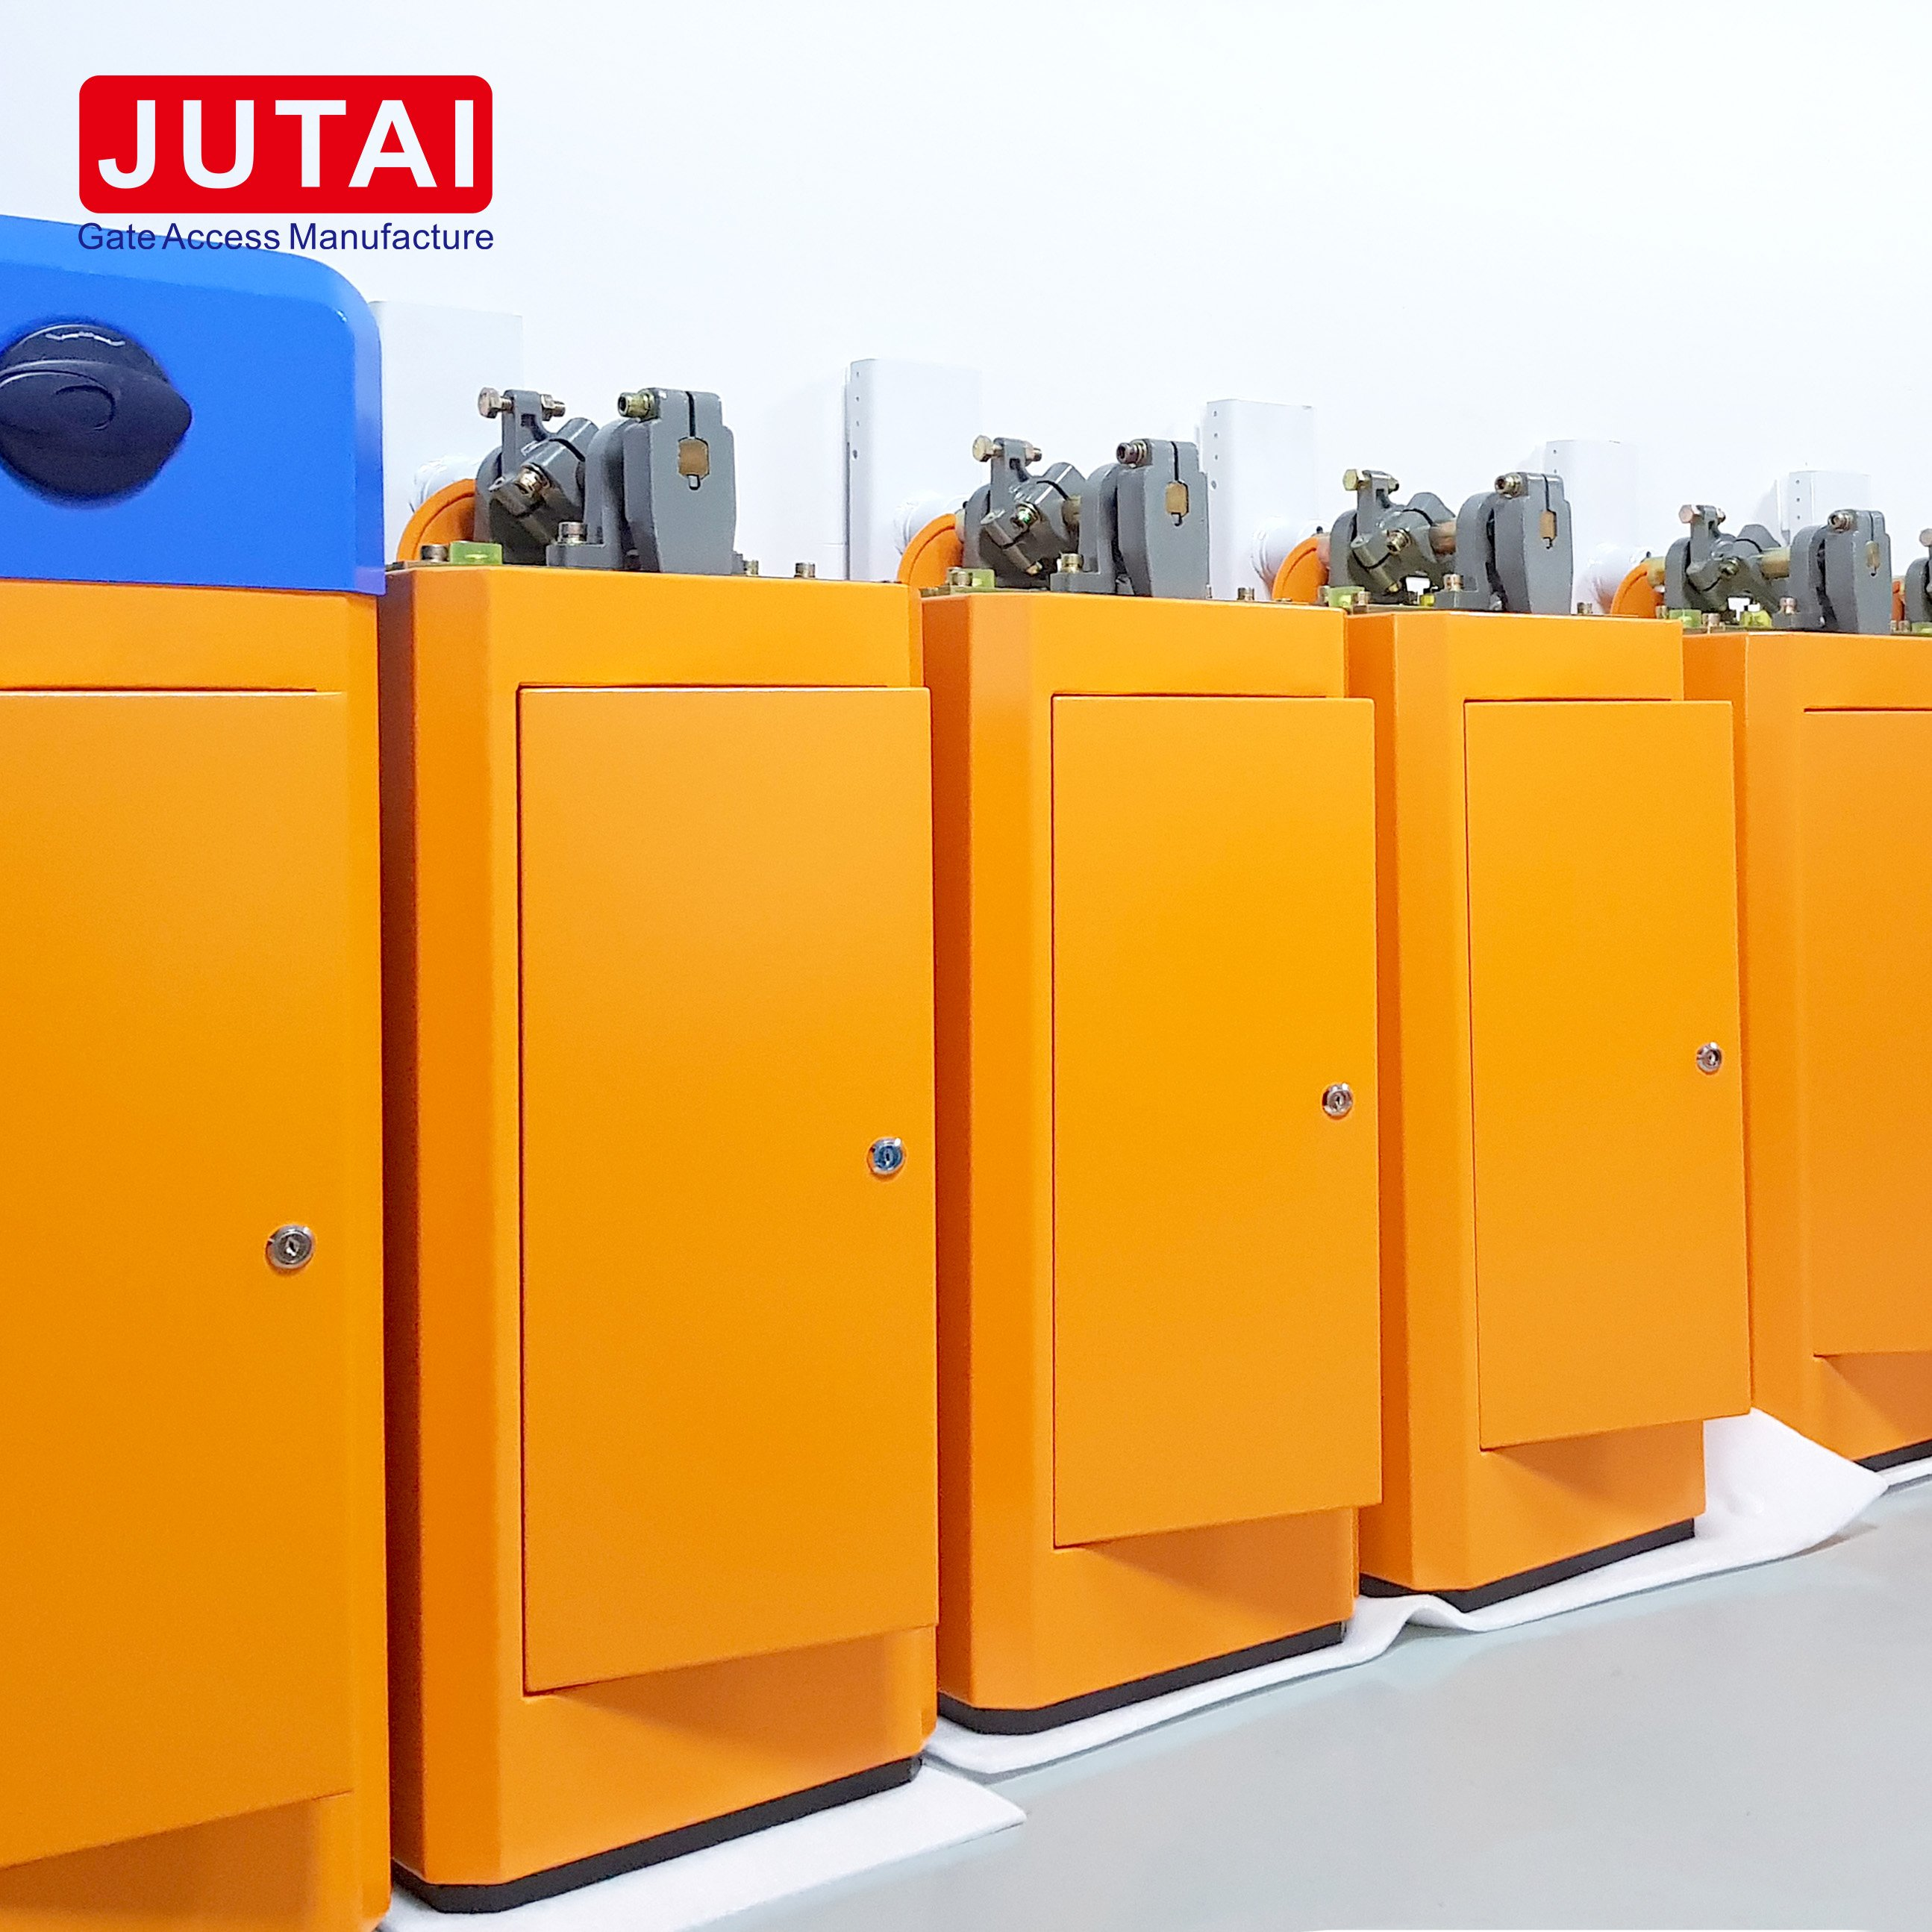 JUTAI Parking Barrier Gate Access with Long Range RFID Reader Open Automatic